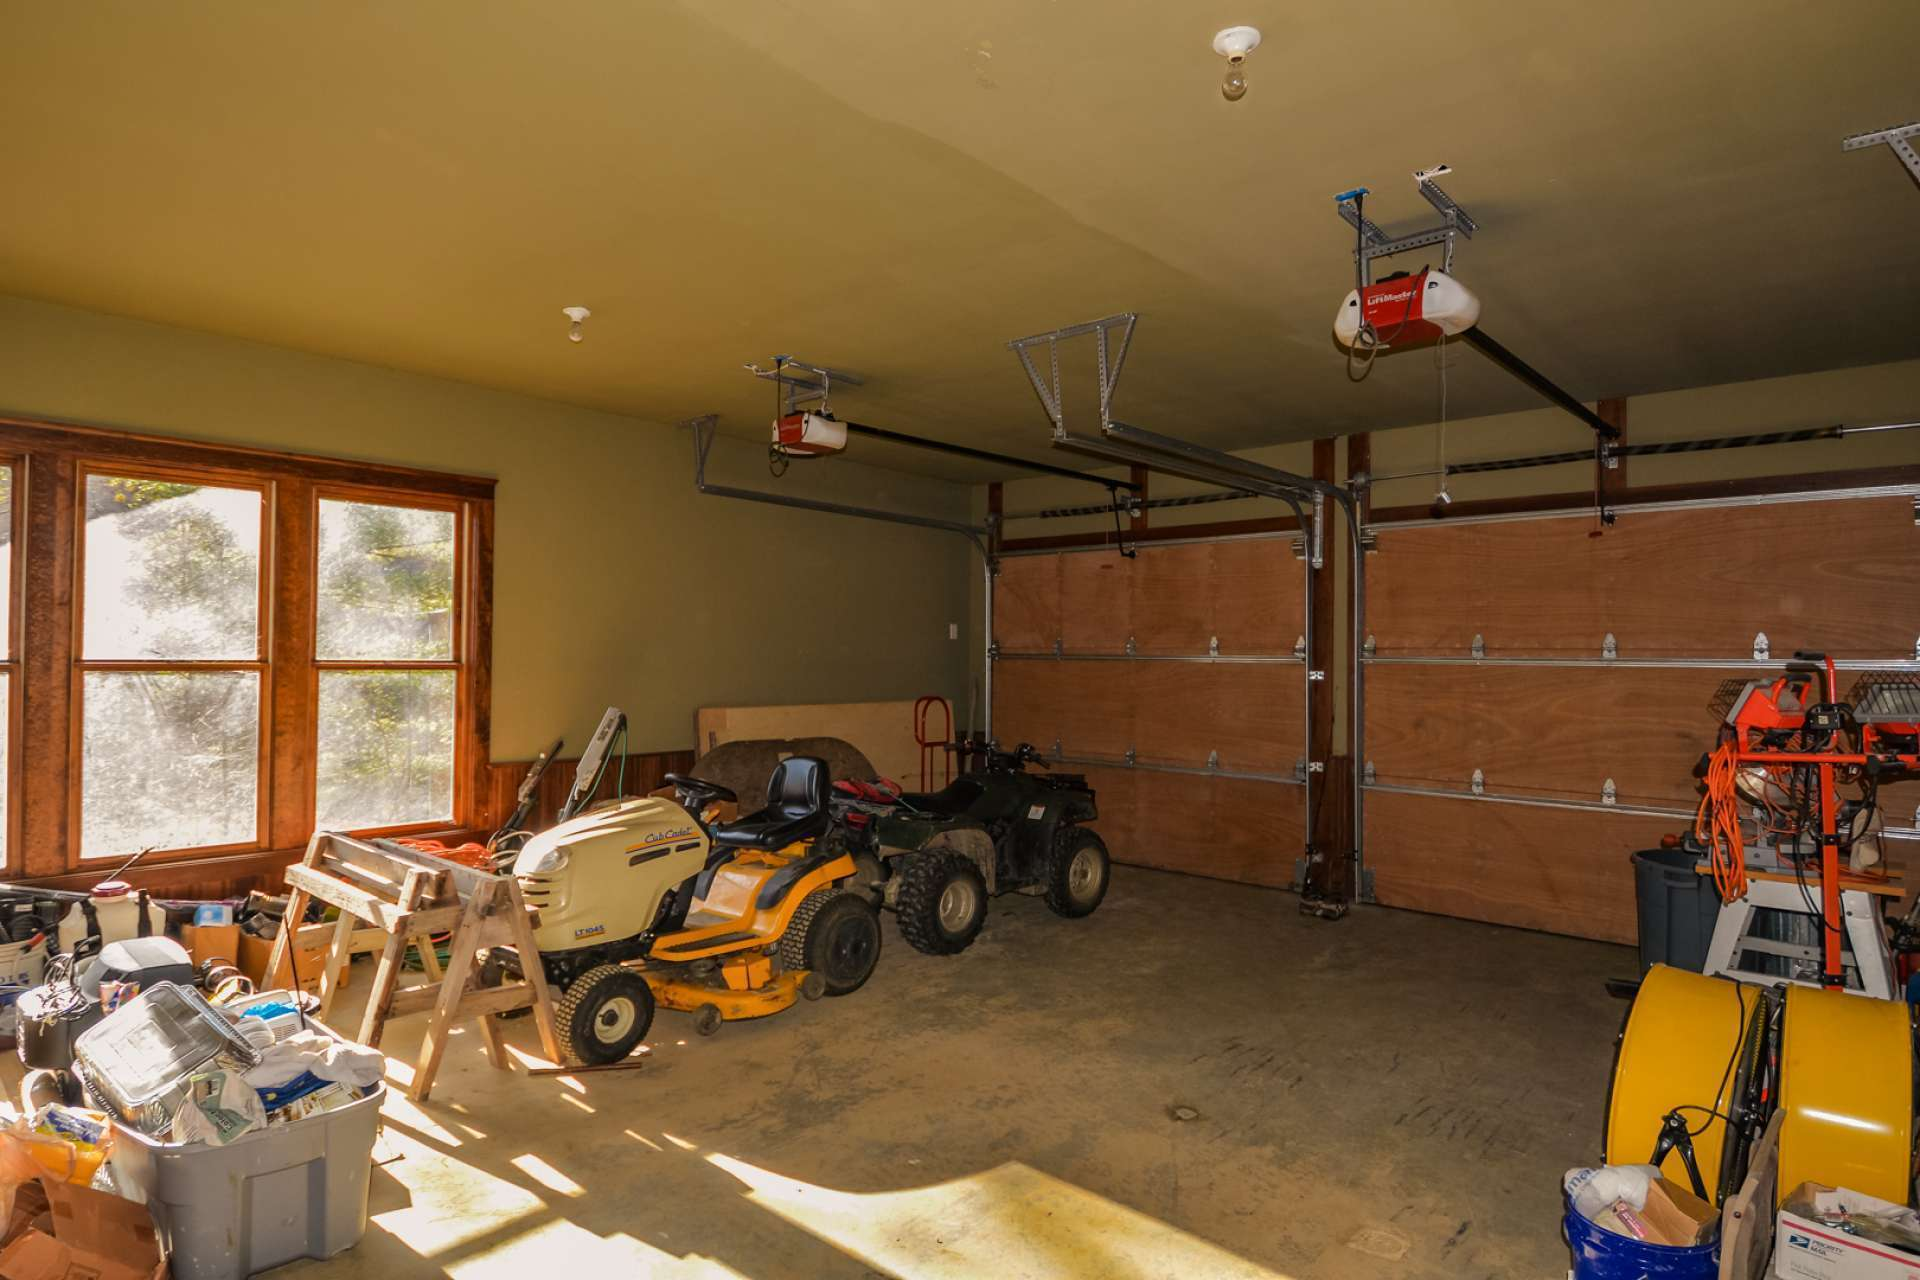 The 2-car garage has spigots with both hot and cold water, as well as a floor drain.